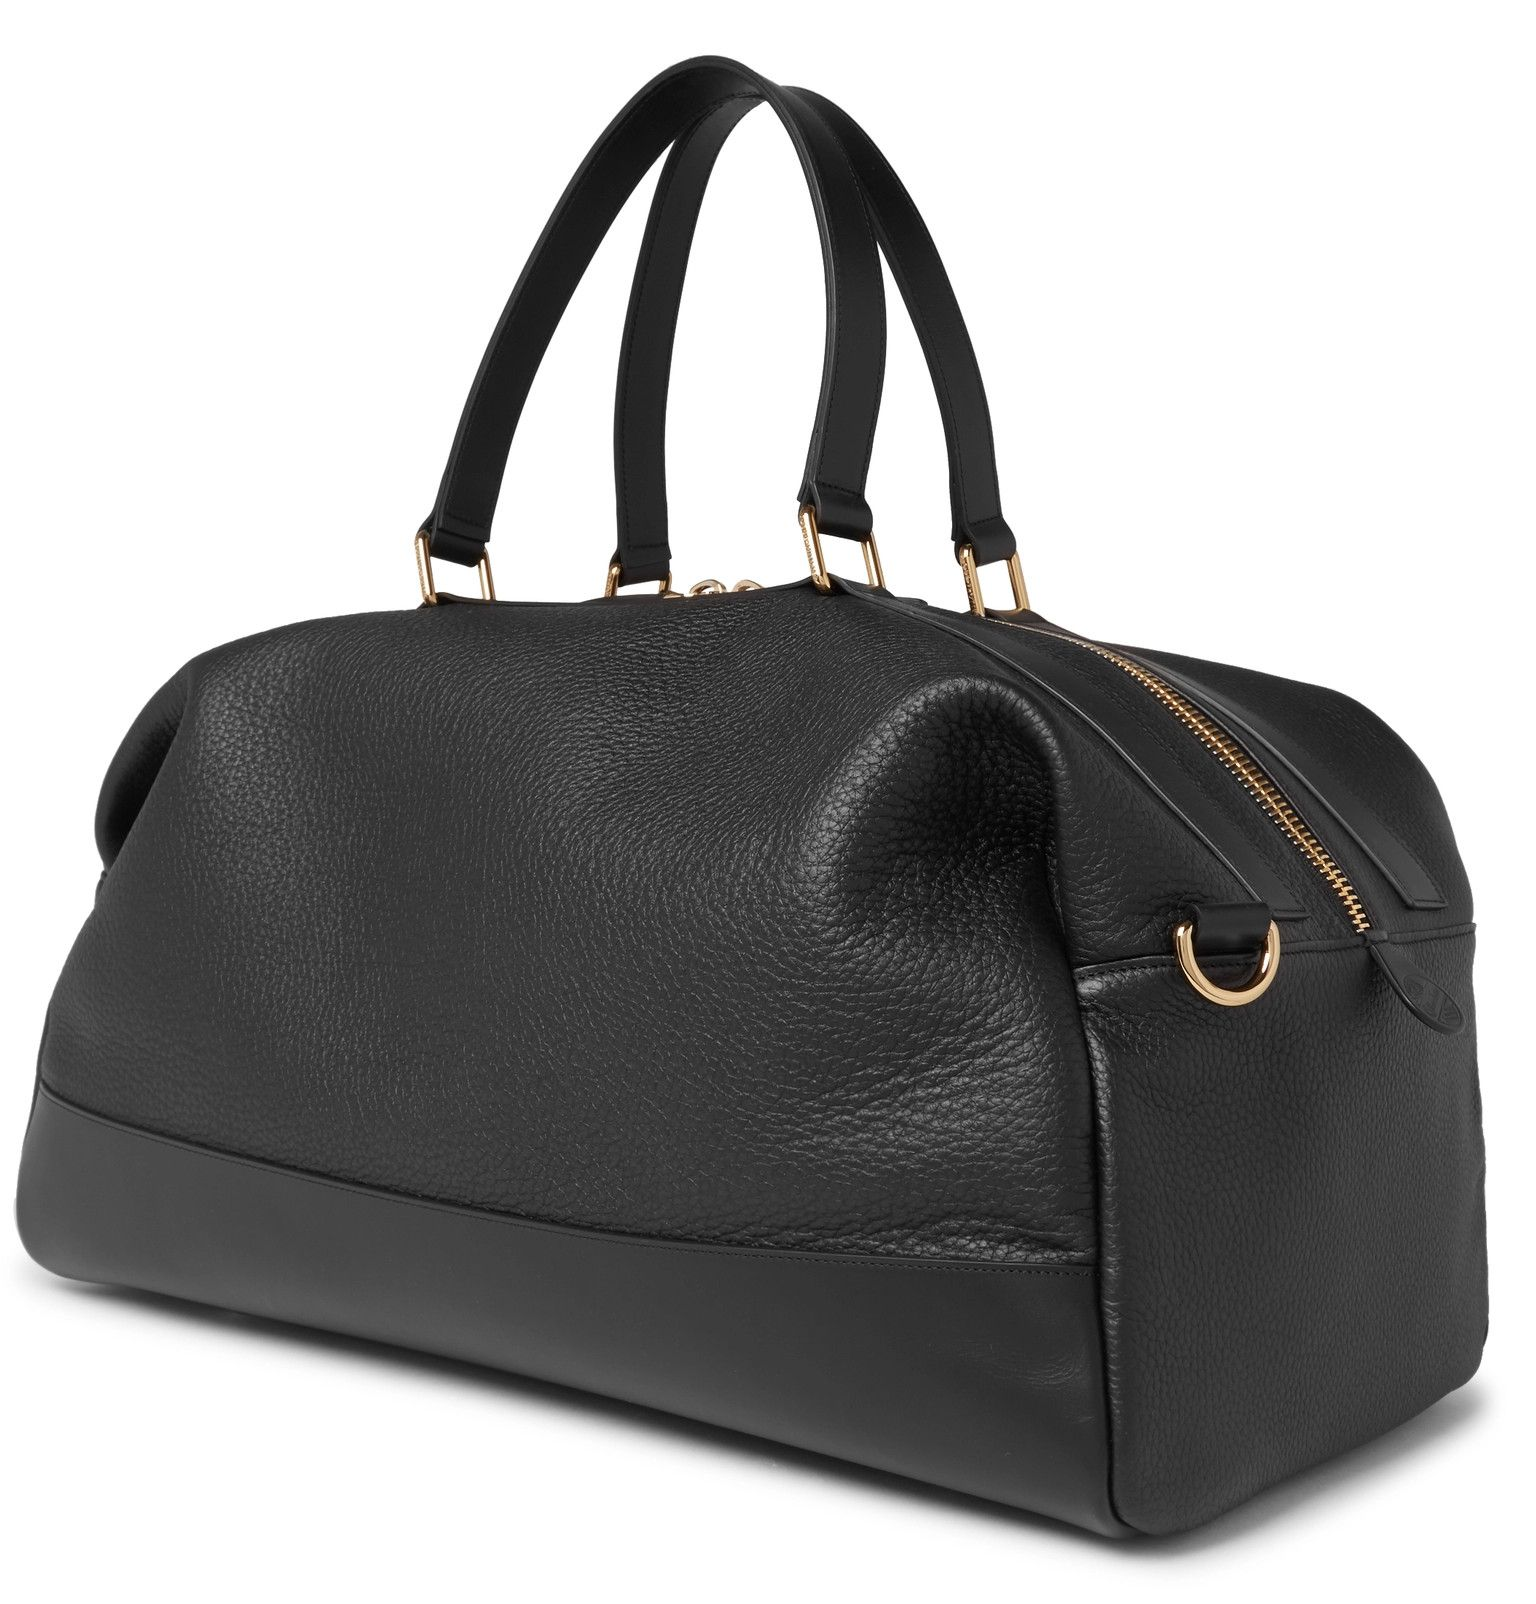 GLOBE-TROTTER Propellor Pebble-Grain Leather Holdall  7098383b8a25c